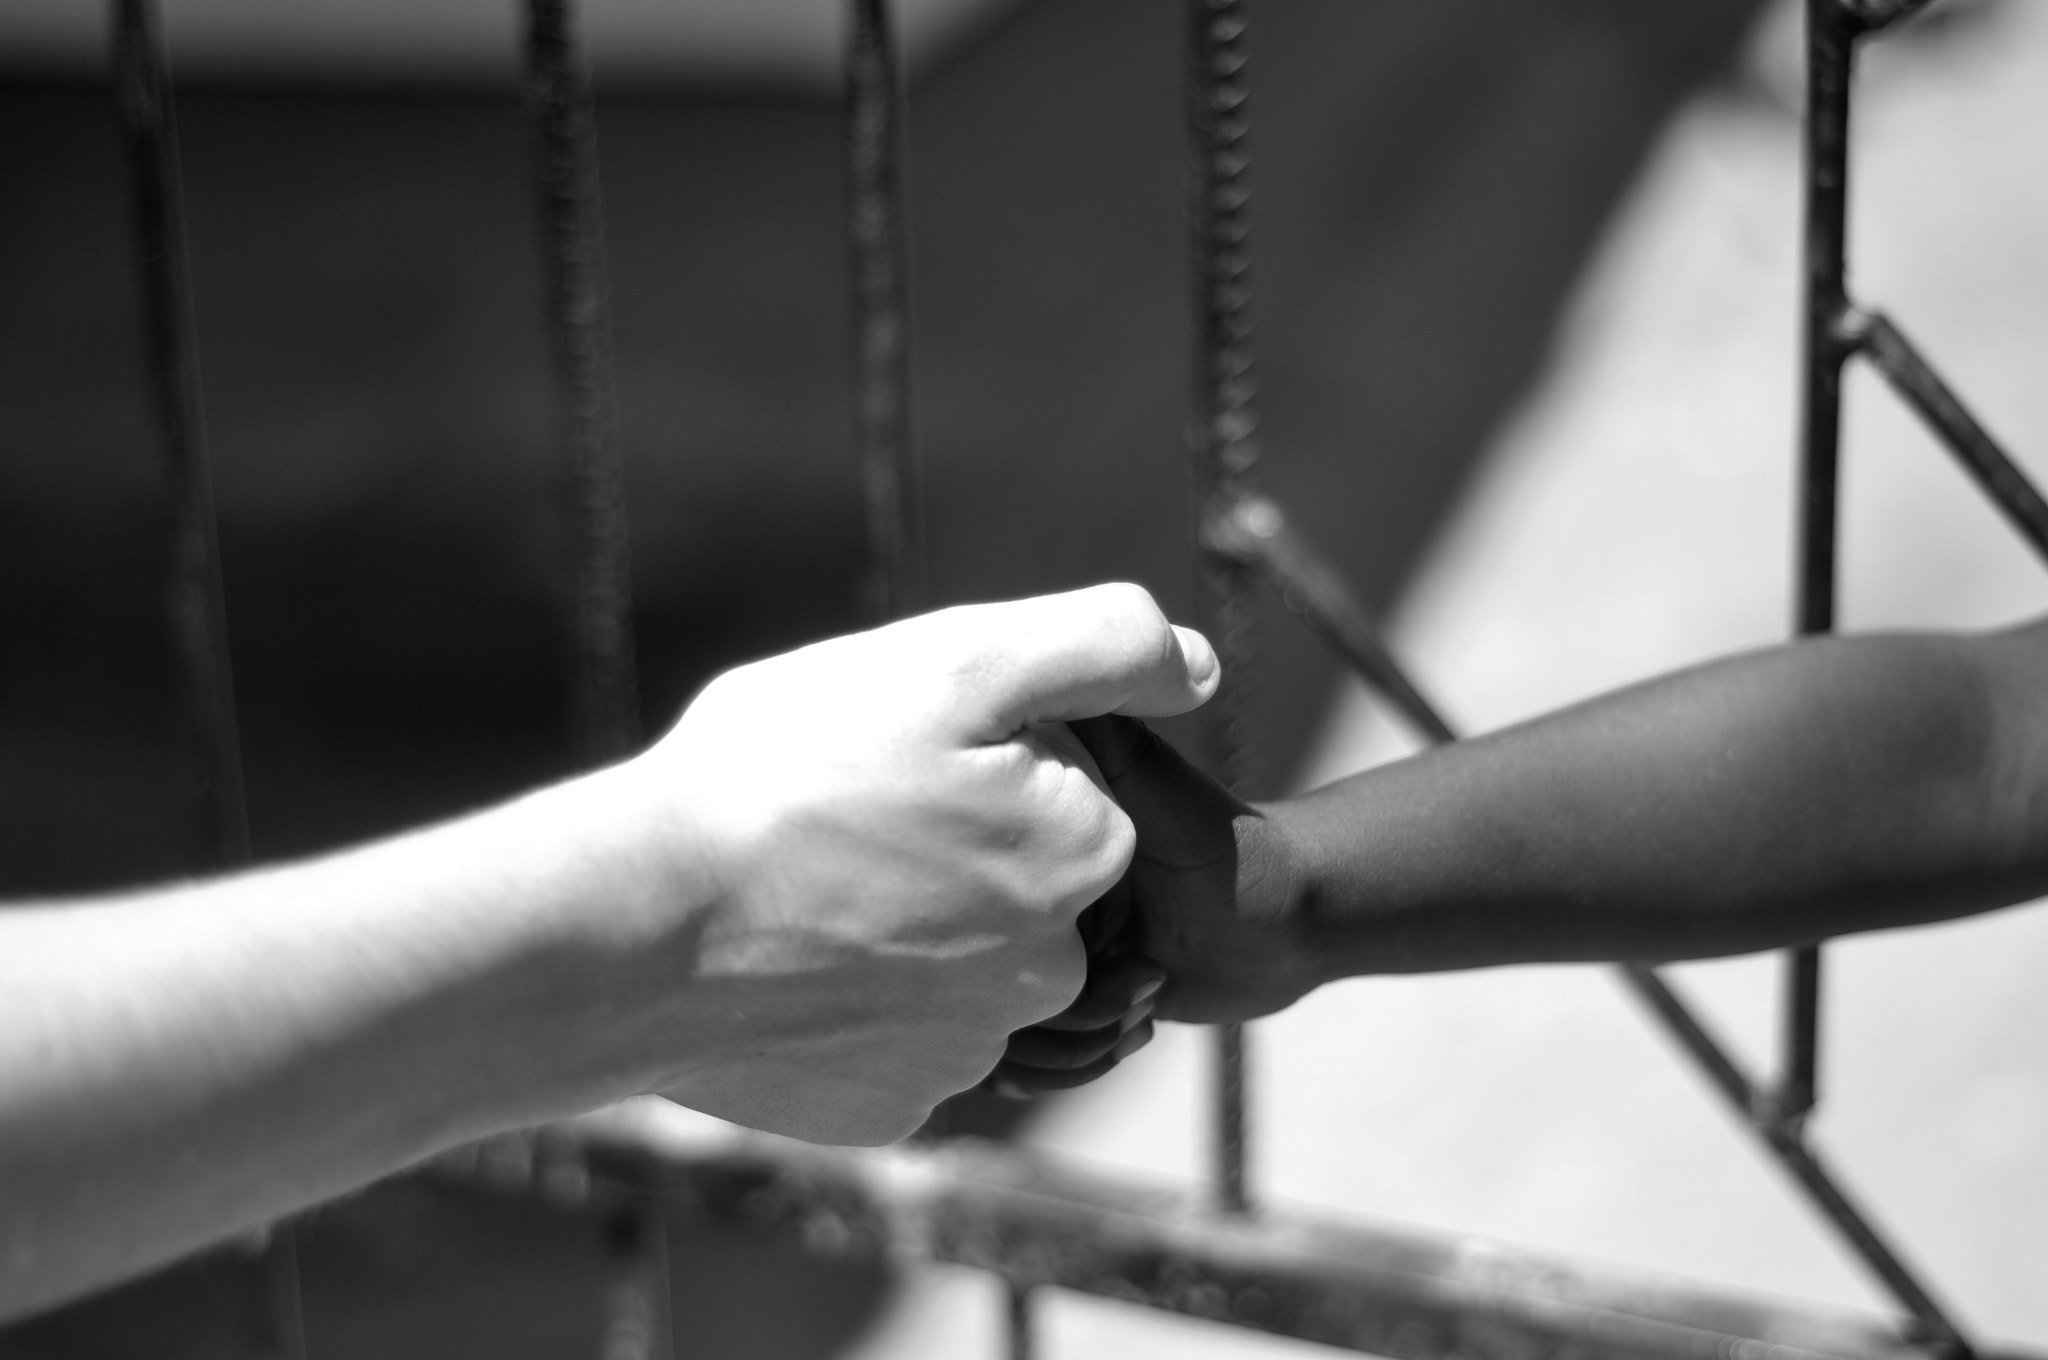 Photograph Handshake by Megan Trace on 500px